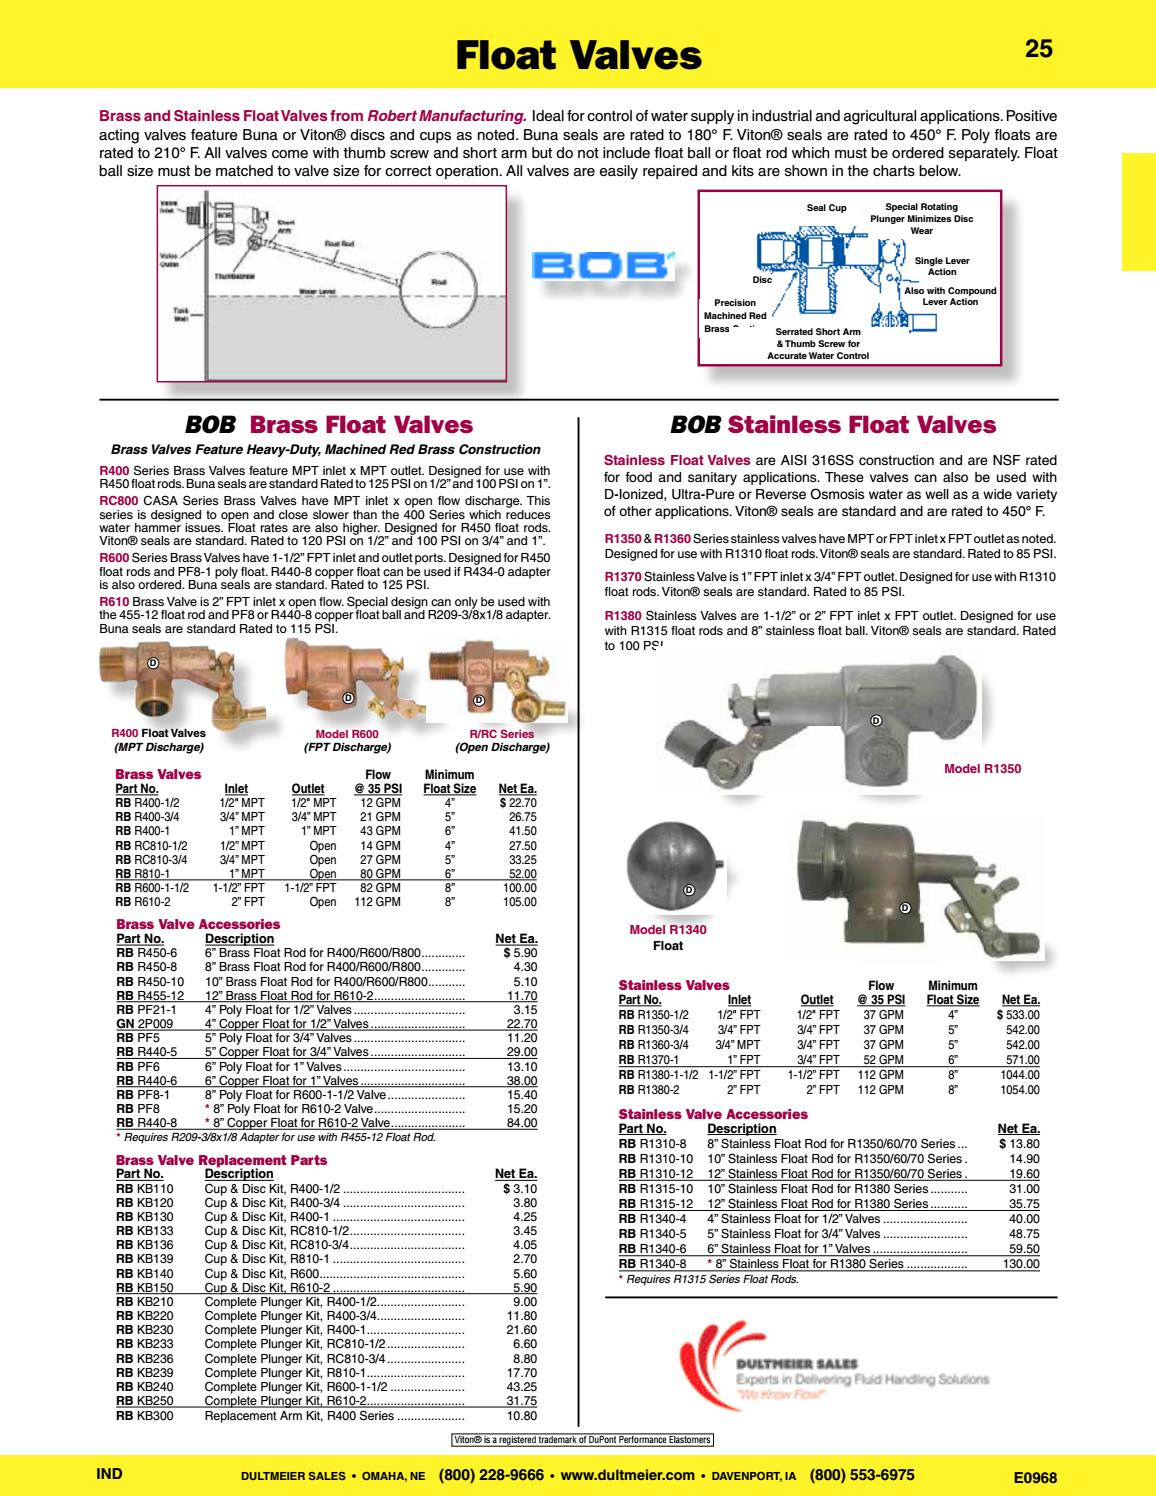 Robert Manufacturing KB136 Bob 2 Piece Standard Disc and Cup Kit for CASA Series RC810 3//4 Brass Float Valves